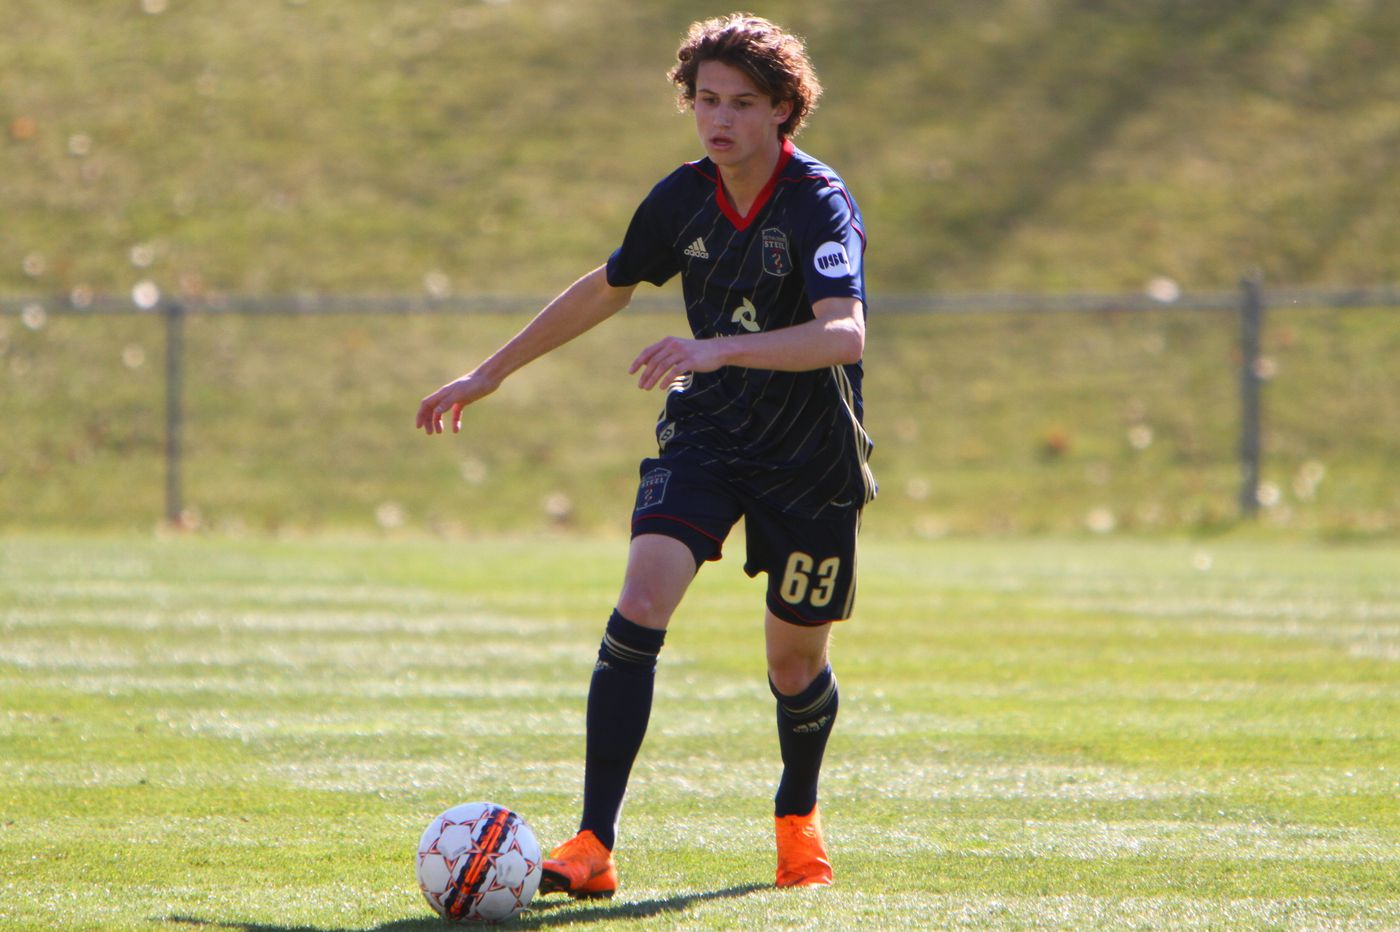 Medford's Brenden Aaronson is the Union's top prospect, and a genuine U.S. soccer playmaker